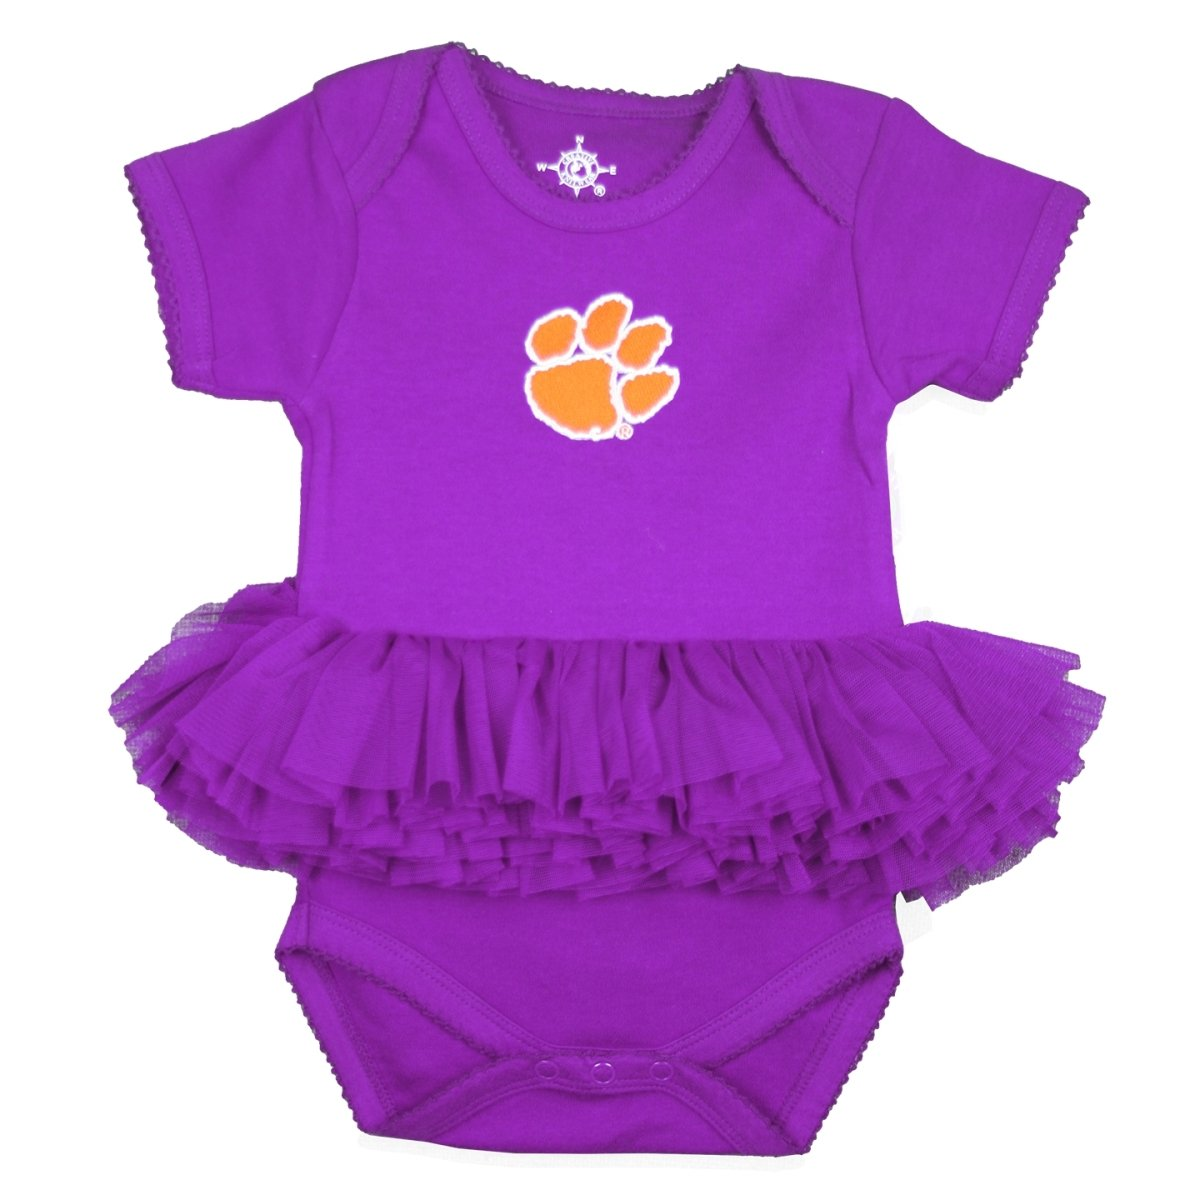 Infant Tutu Bodysuit With Orange Paw White Outline - Mr. Knickerbocker